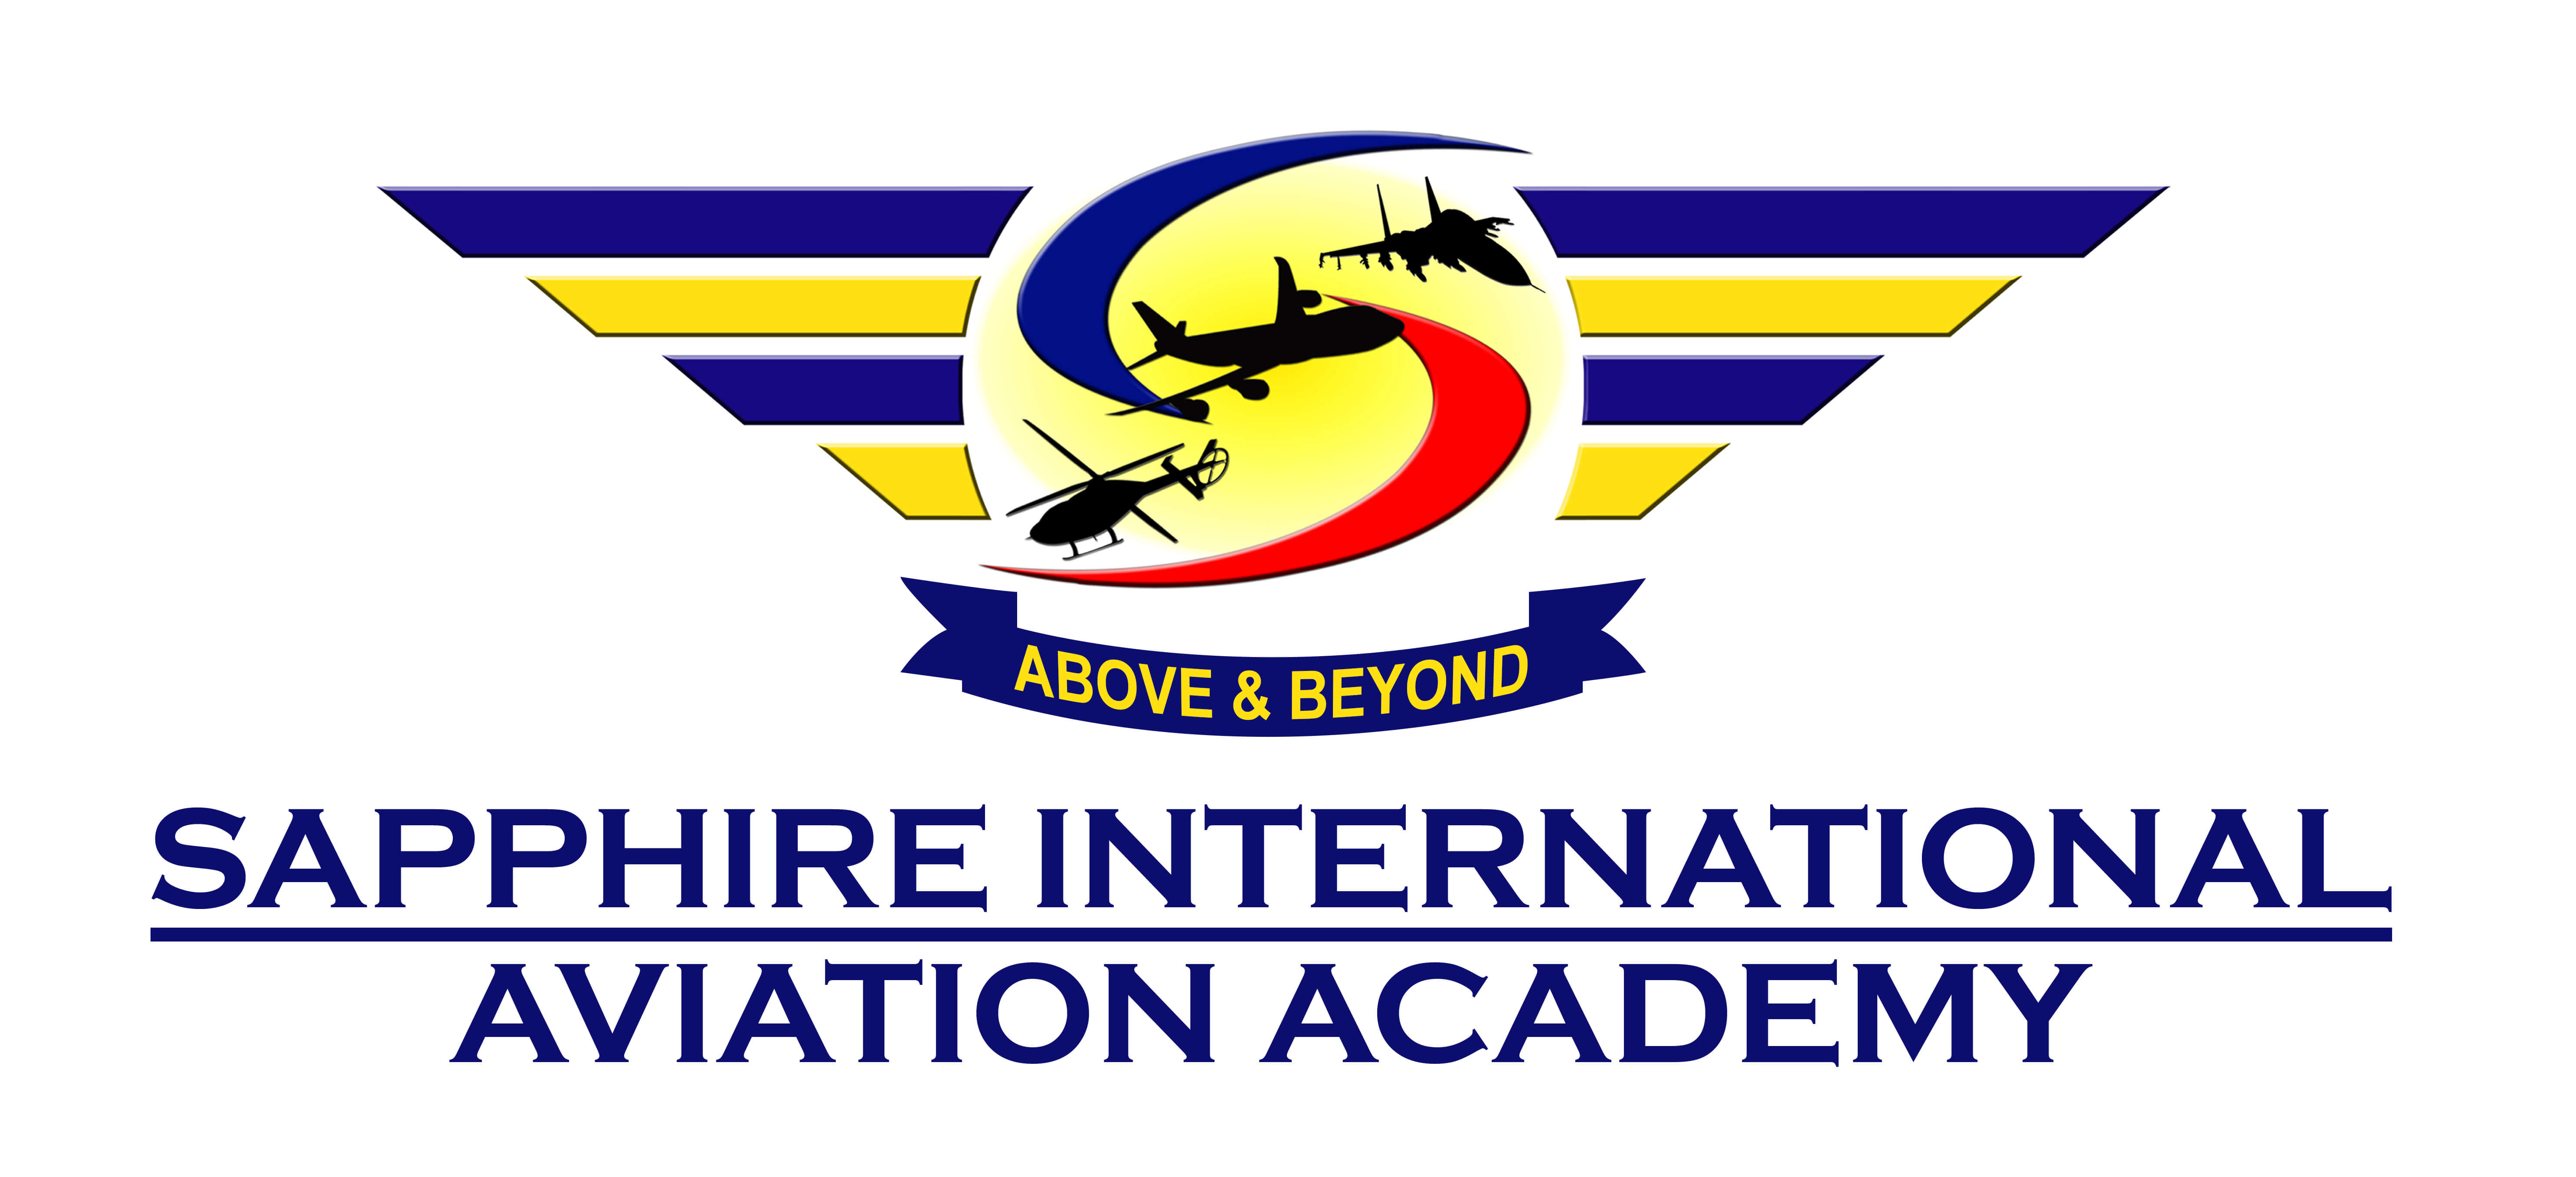 Sapphire International Aviation Academy